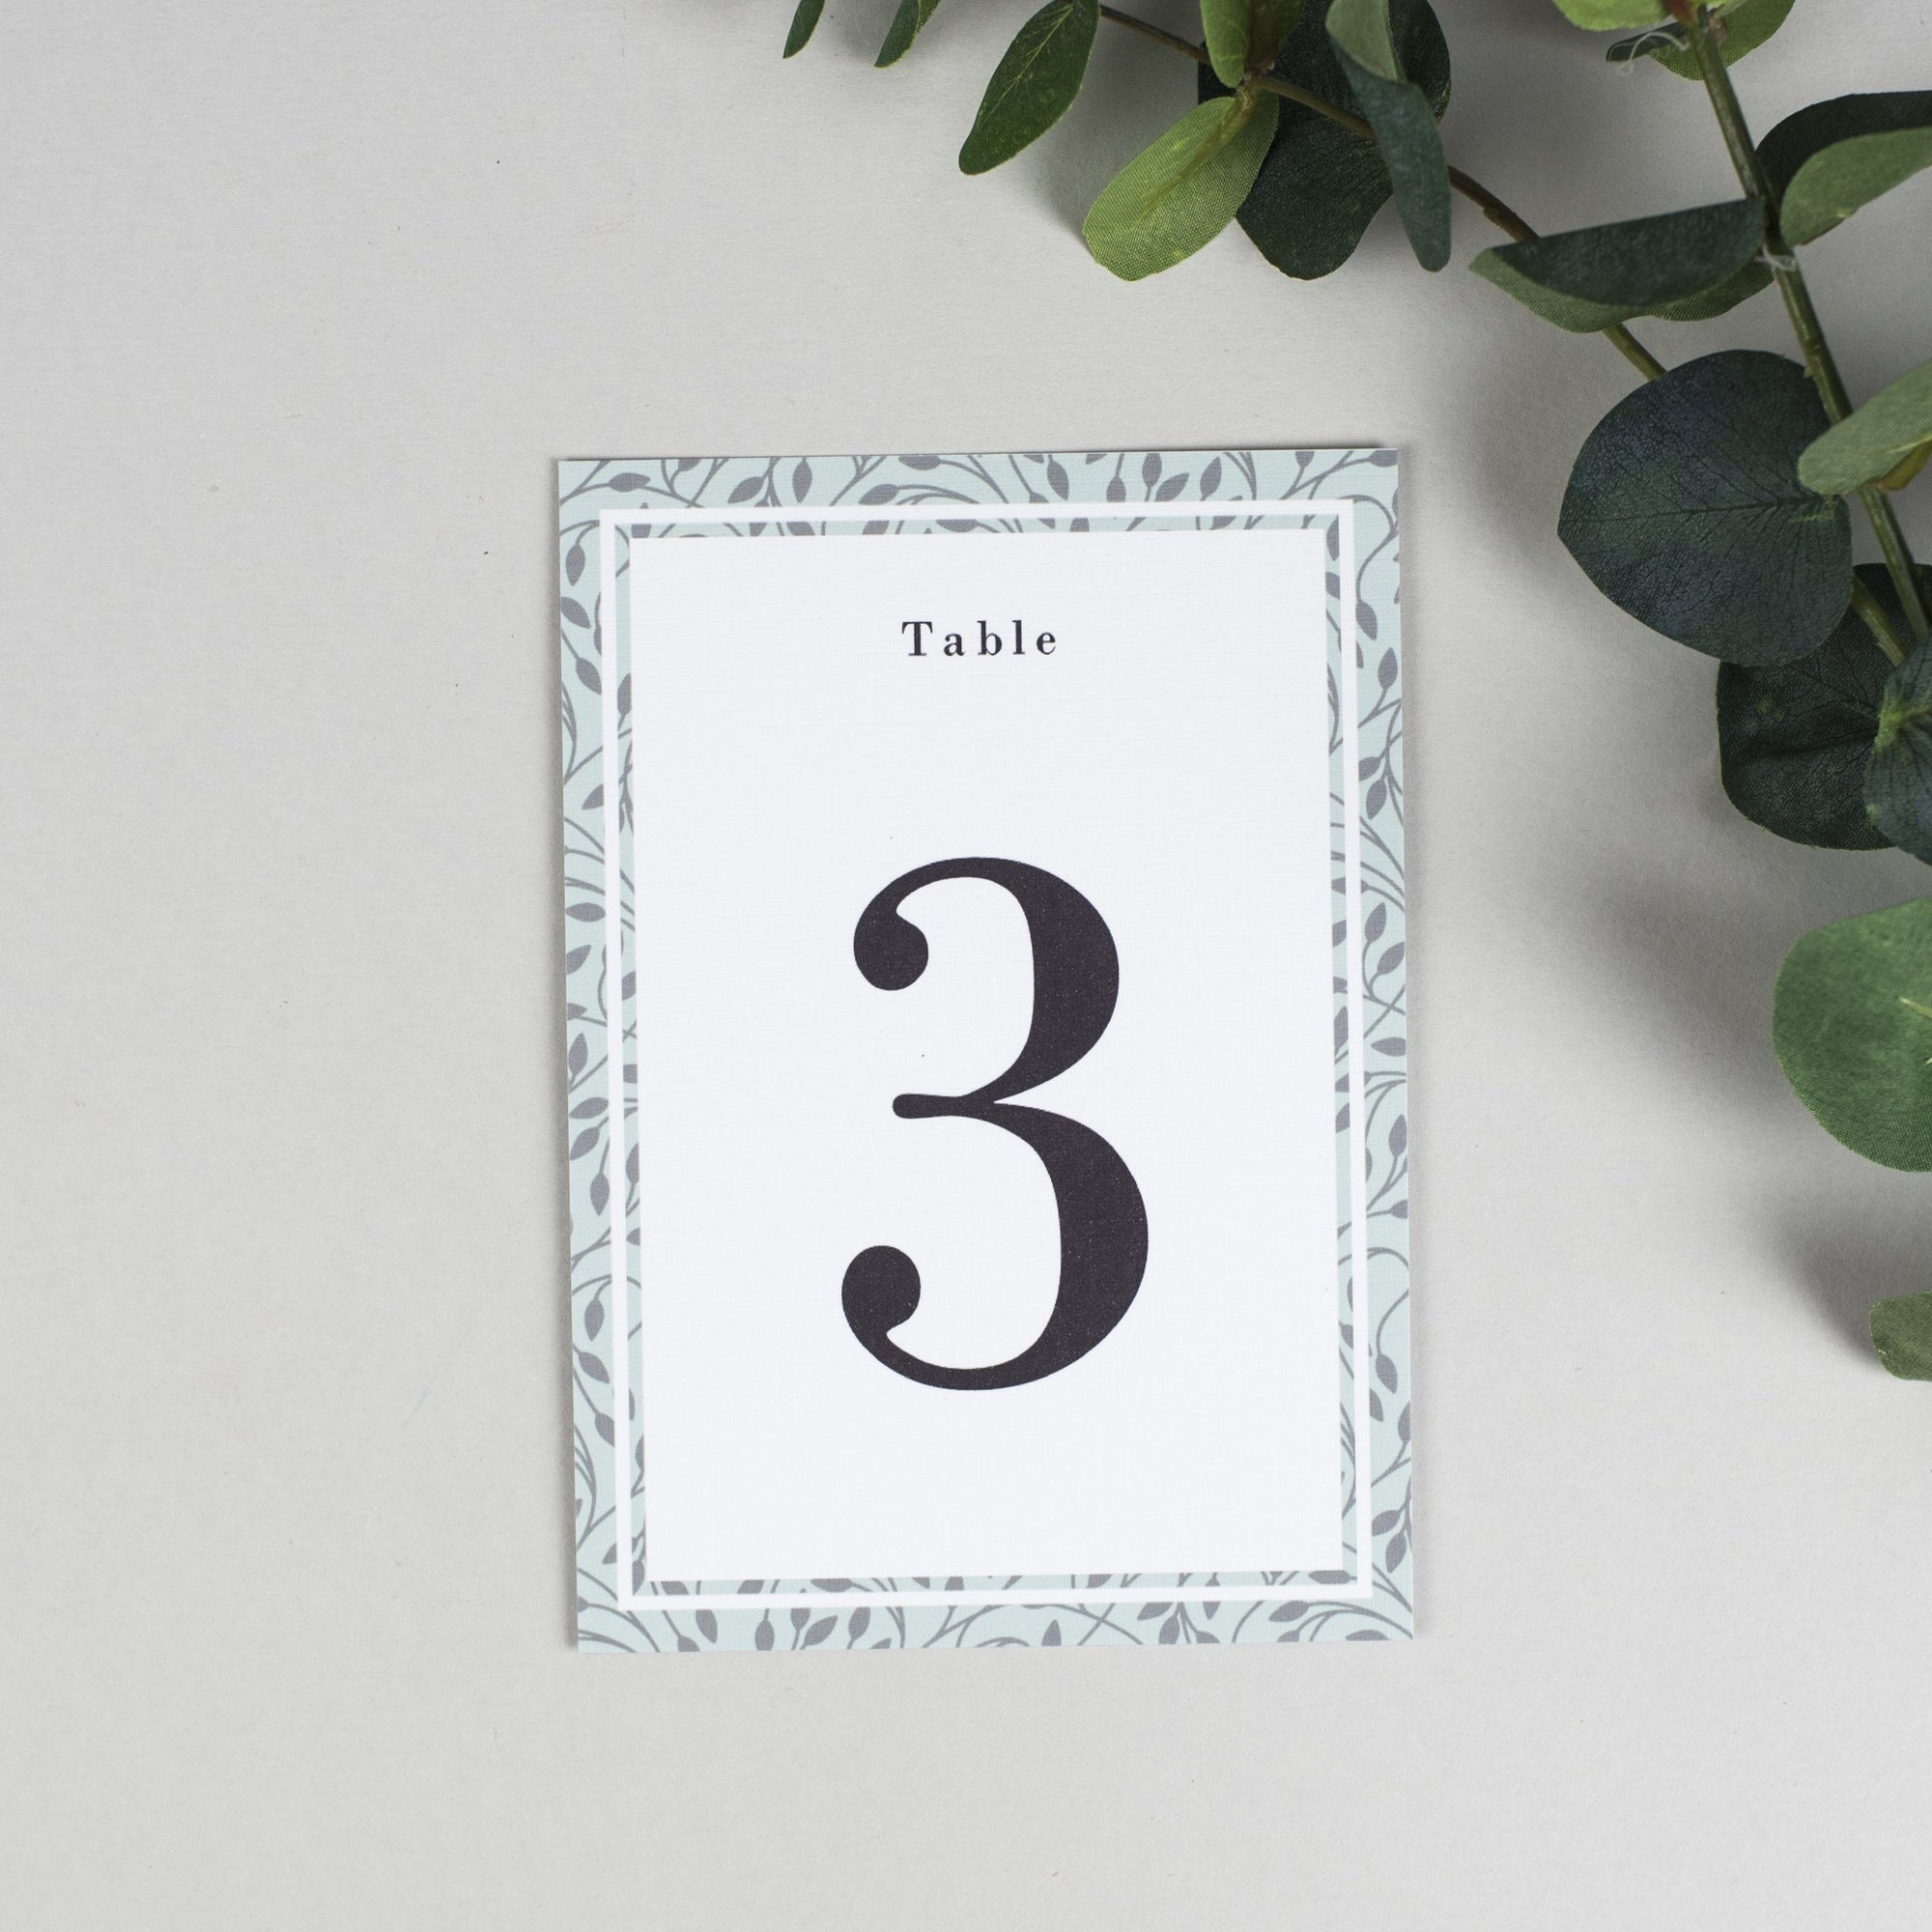 Table Names or Numbers - Clare - Vine